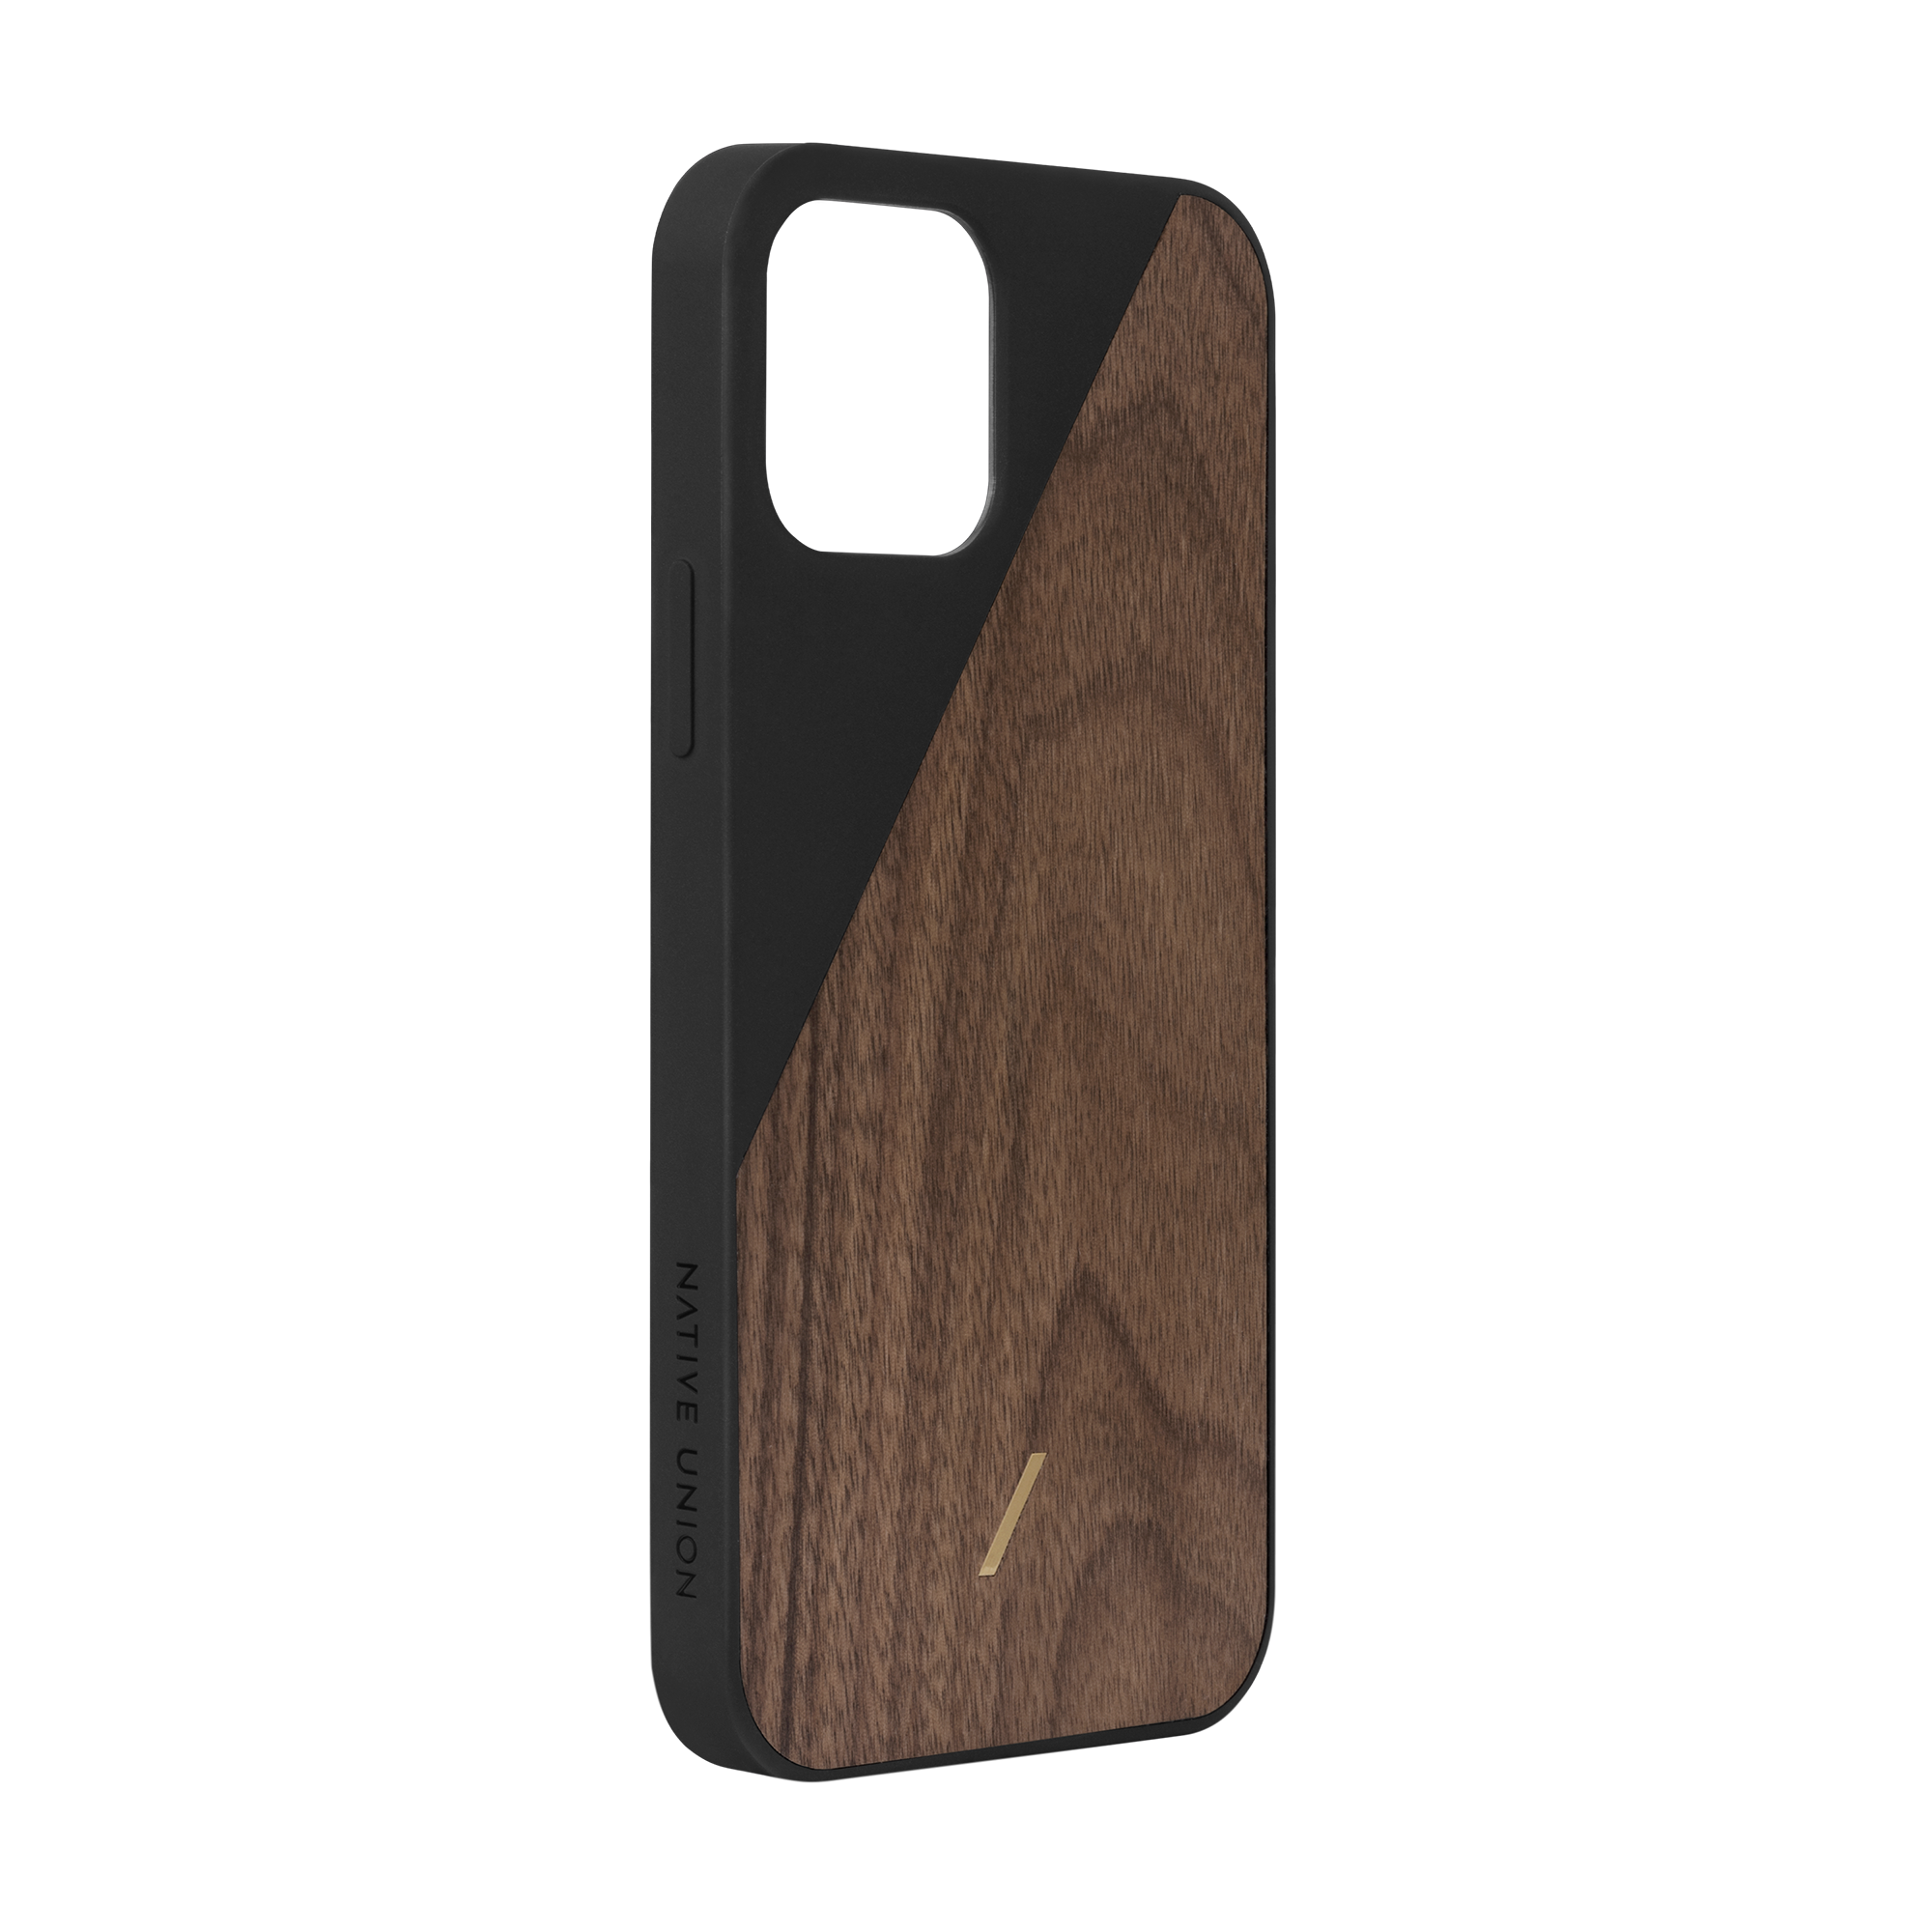 34316691046539,Clic Wooden (iPhone 12 Pro) - Black